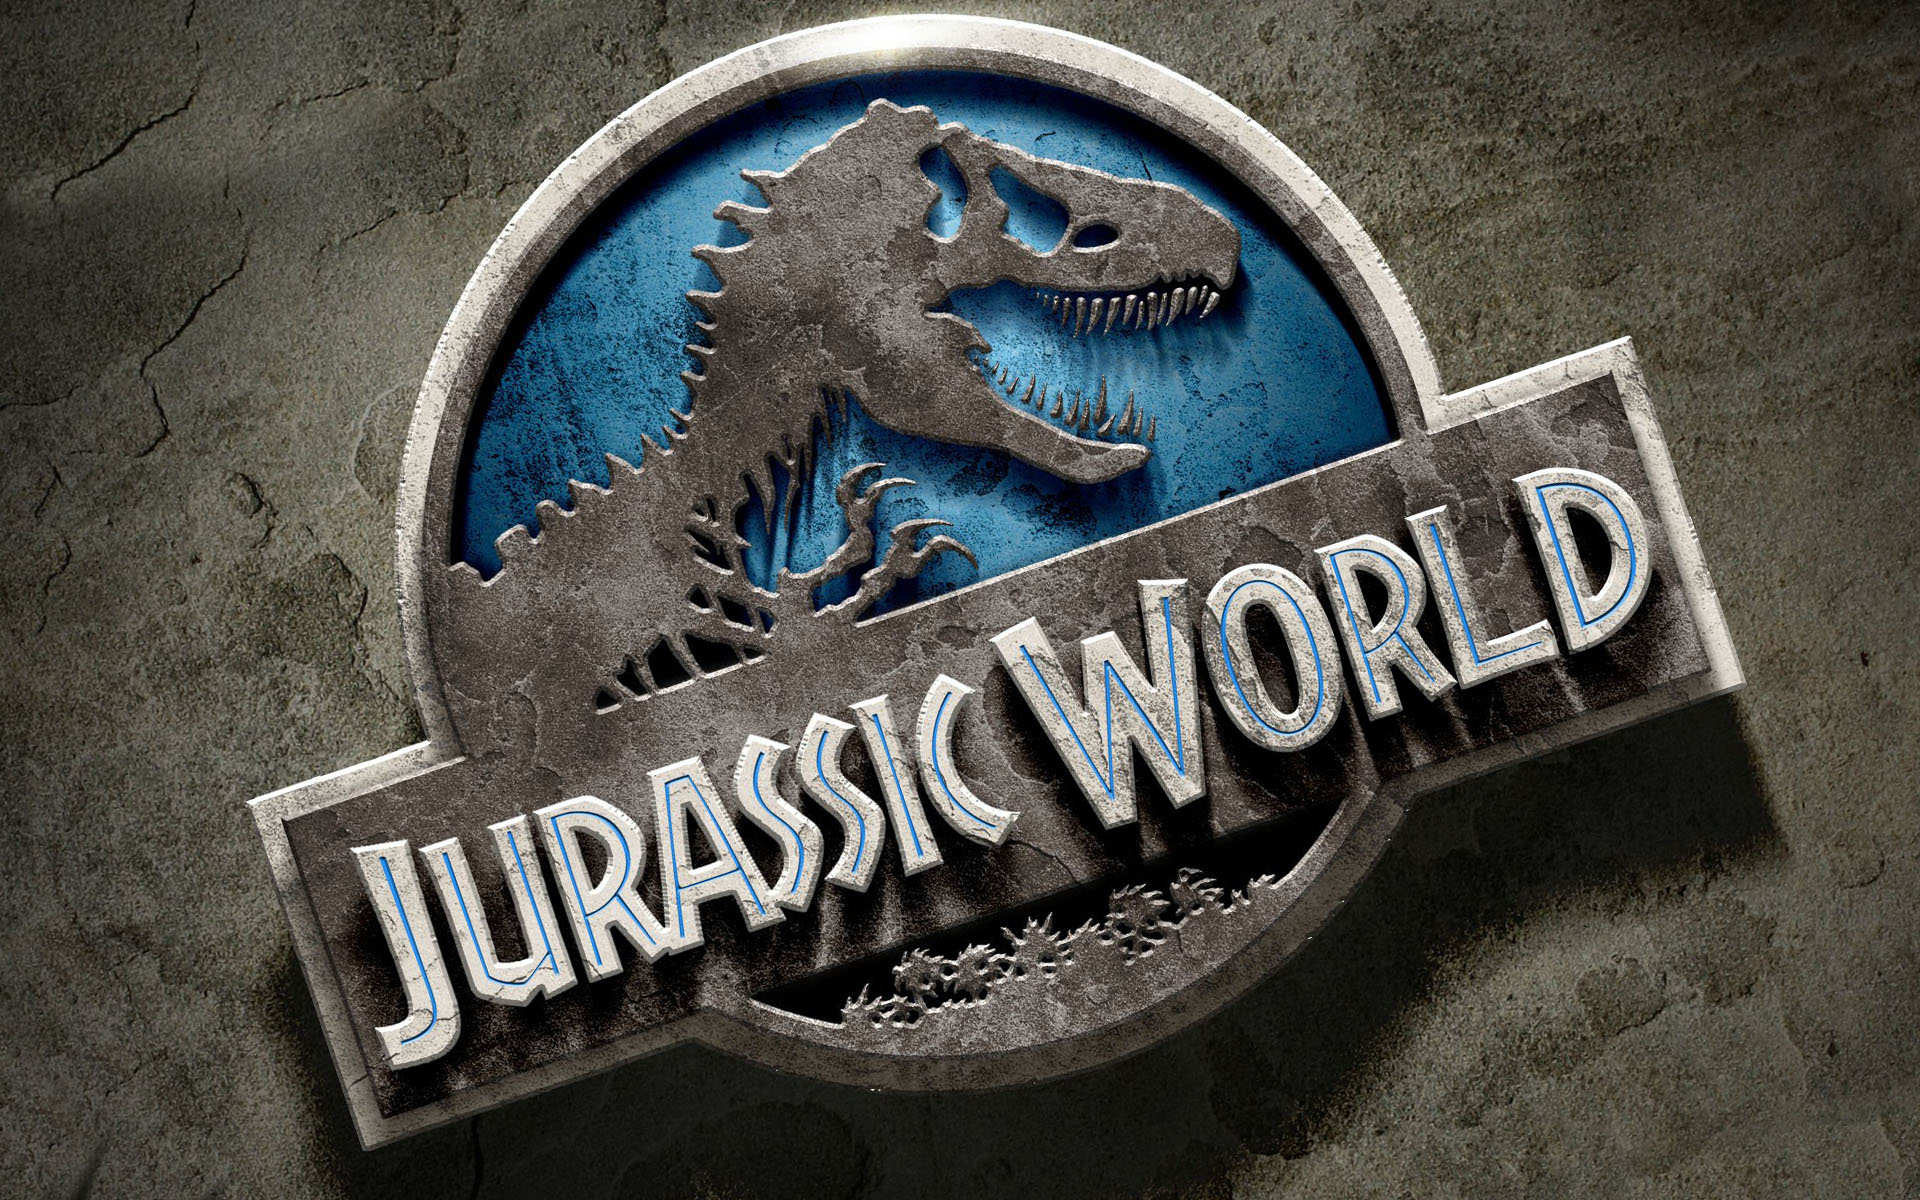 jurassic world 2015 movie hd wallpapers volganga. Black Bedroom Furniture Sets. Home Design Ideas